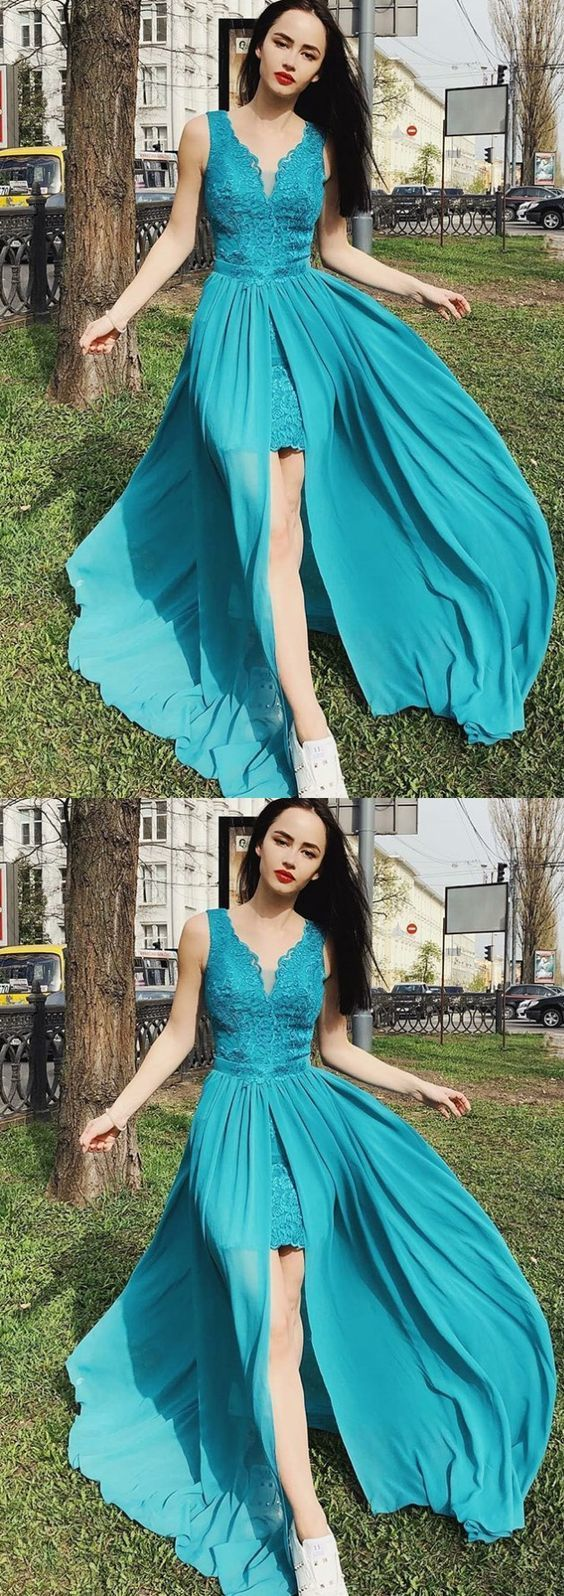 V-Neck Turquoise Chiffon Prom Party, Homecoming Dress with Lace ,High Quality